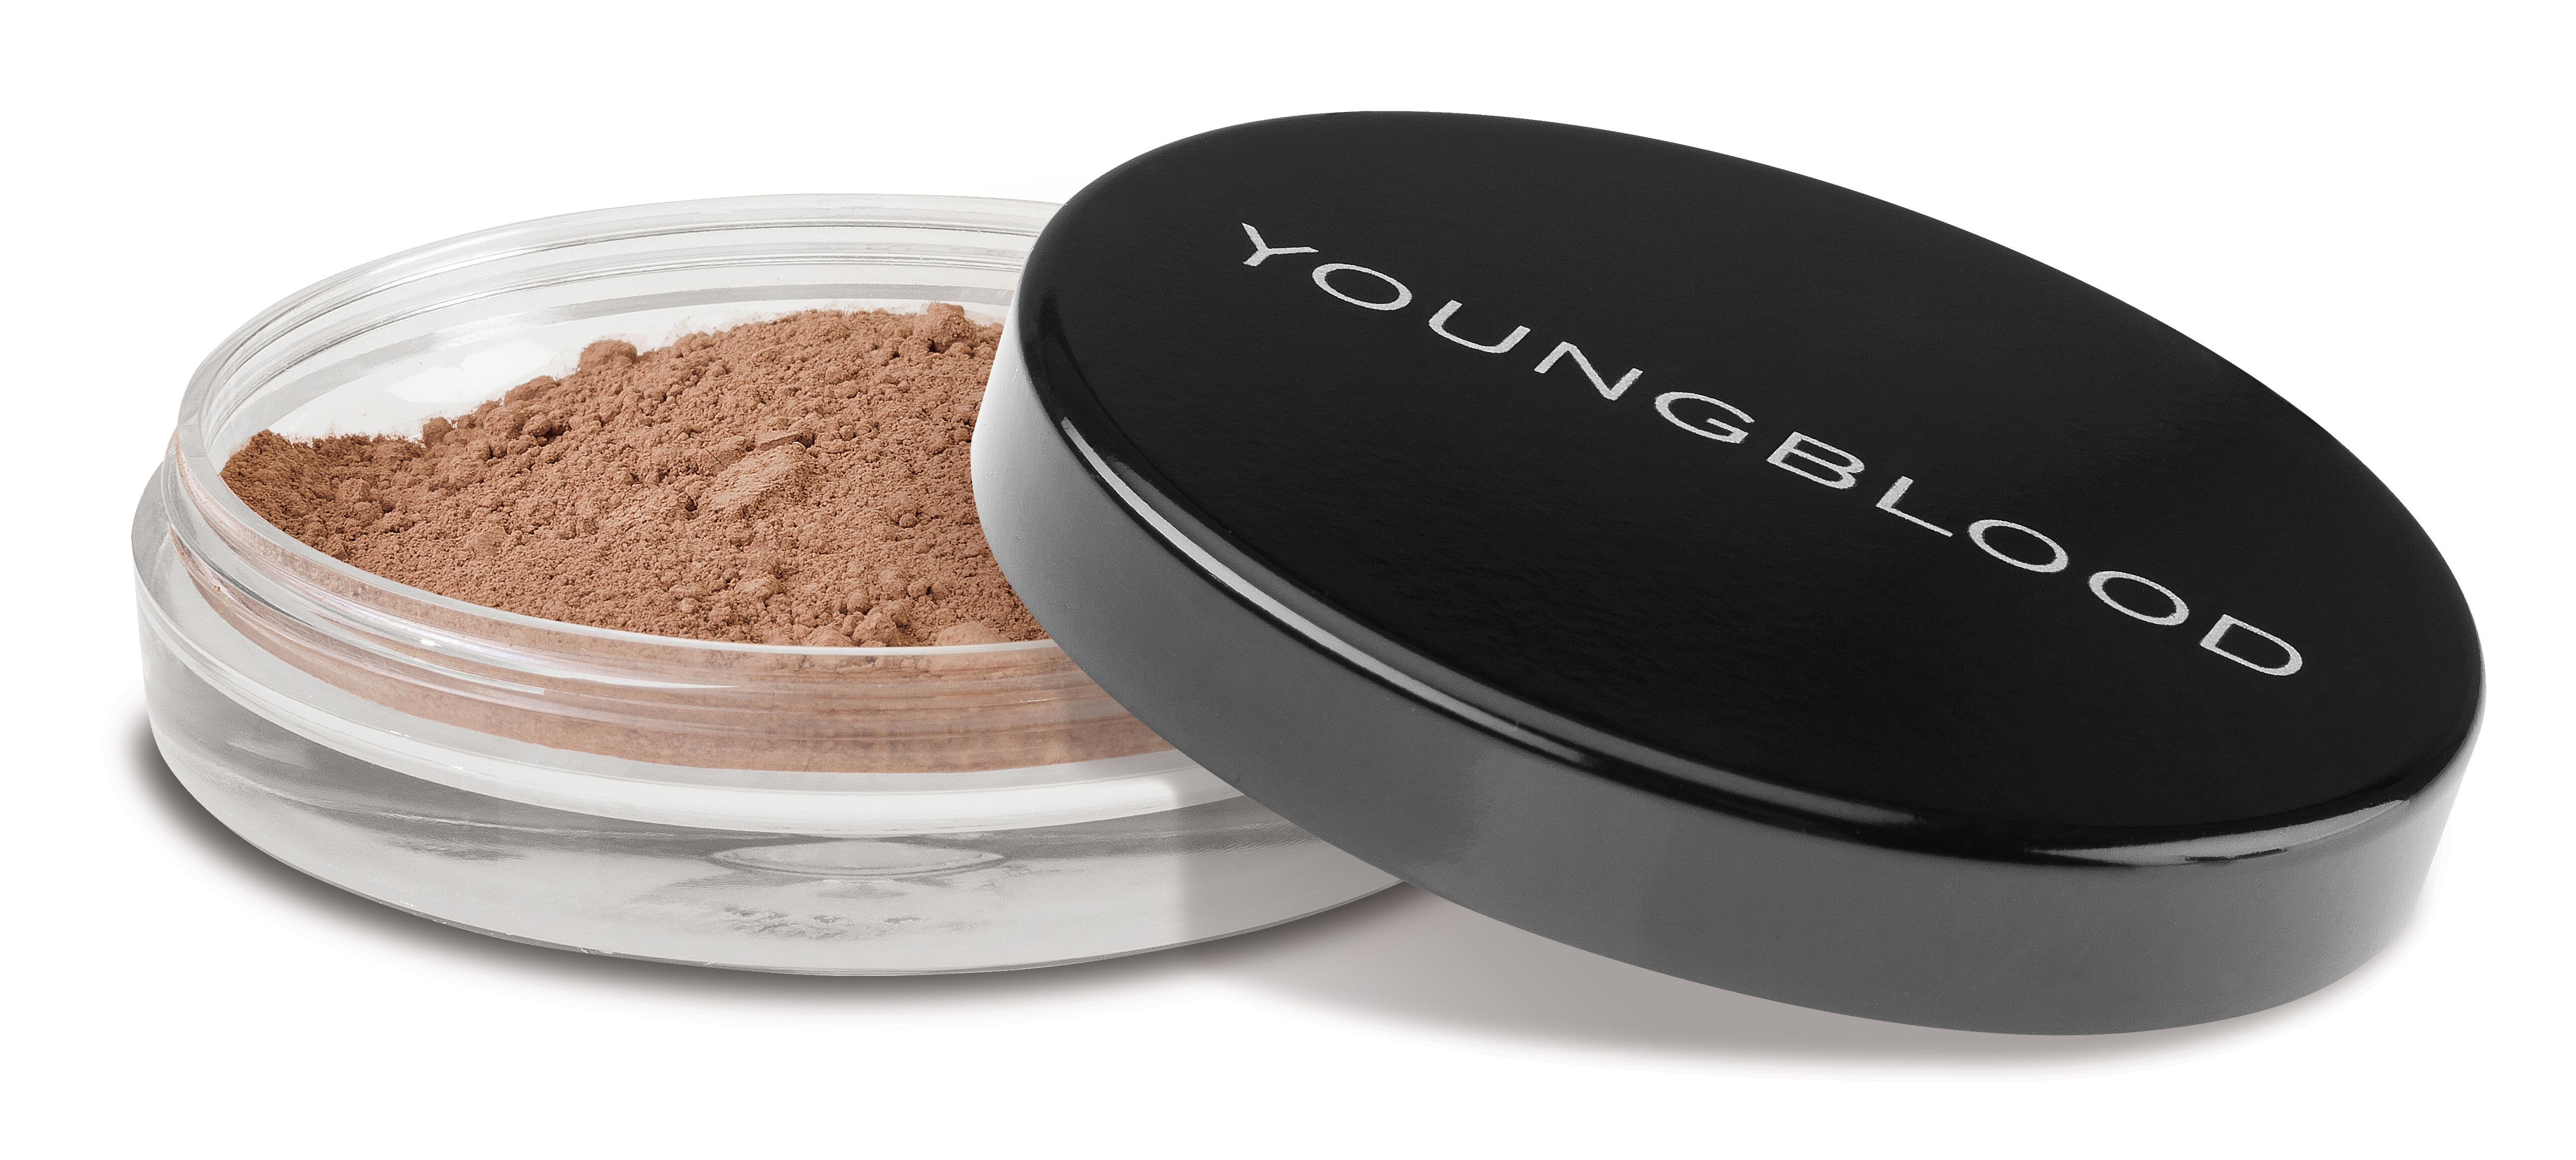 Youngblood natural loose mineral foundation, sunglow